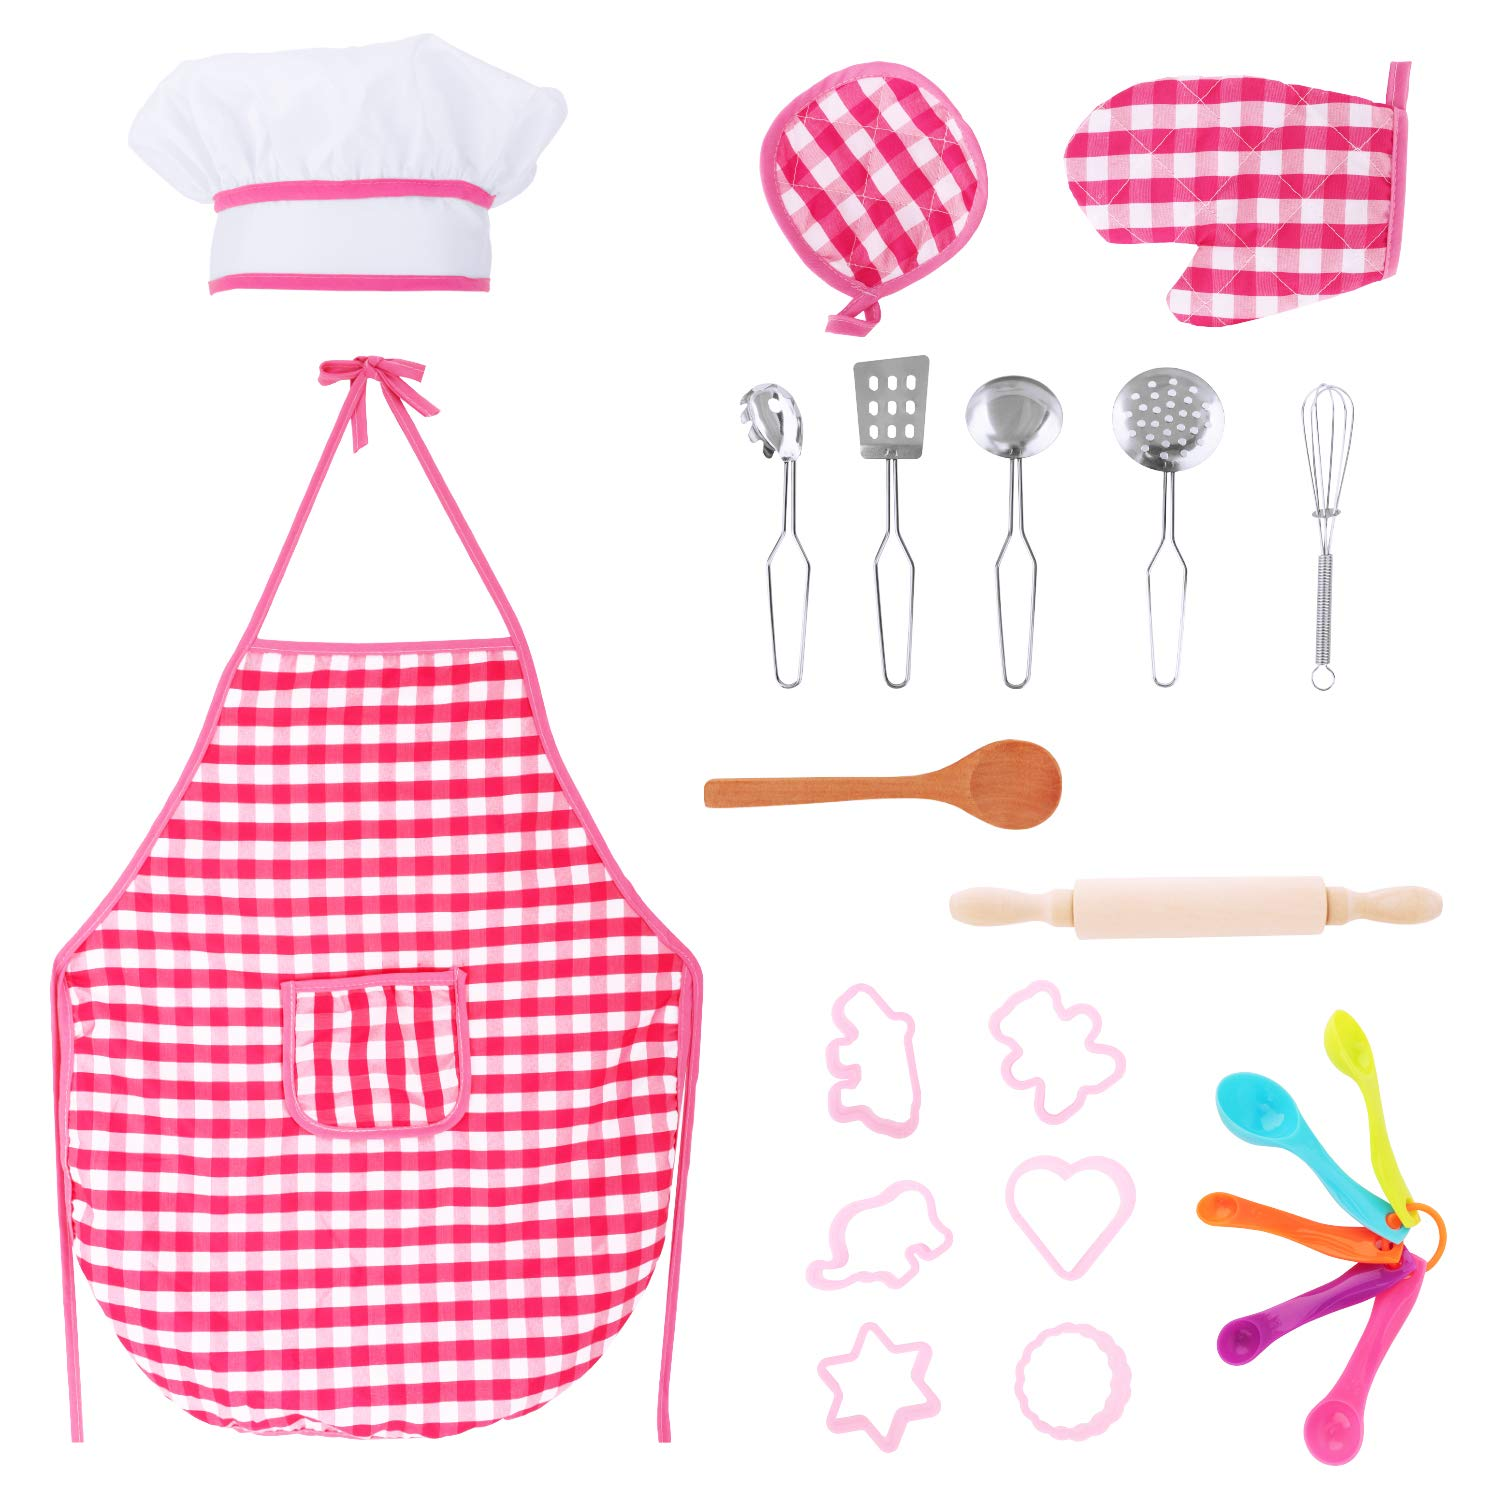 Zooawa Kids Pretend Cooking and Baking Kit, [22PCS] Chef Role Play Costume Toy Set Including Chef Hat, Apron, Gloves, Measuring Spoons, Cake Molds, Suitable for Over 3-Year-Old Girls, Colorful